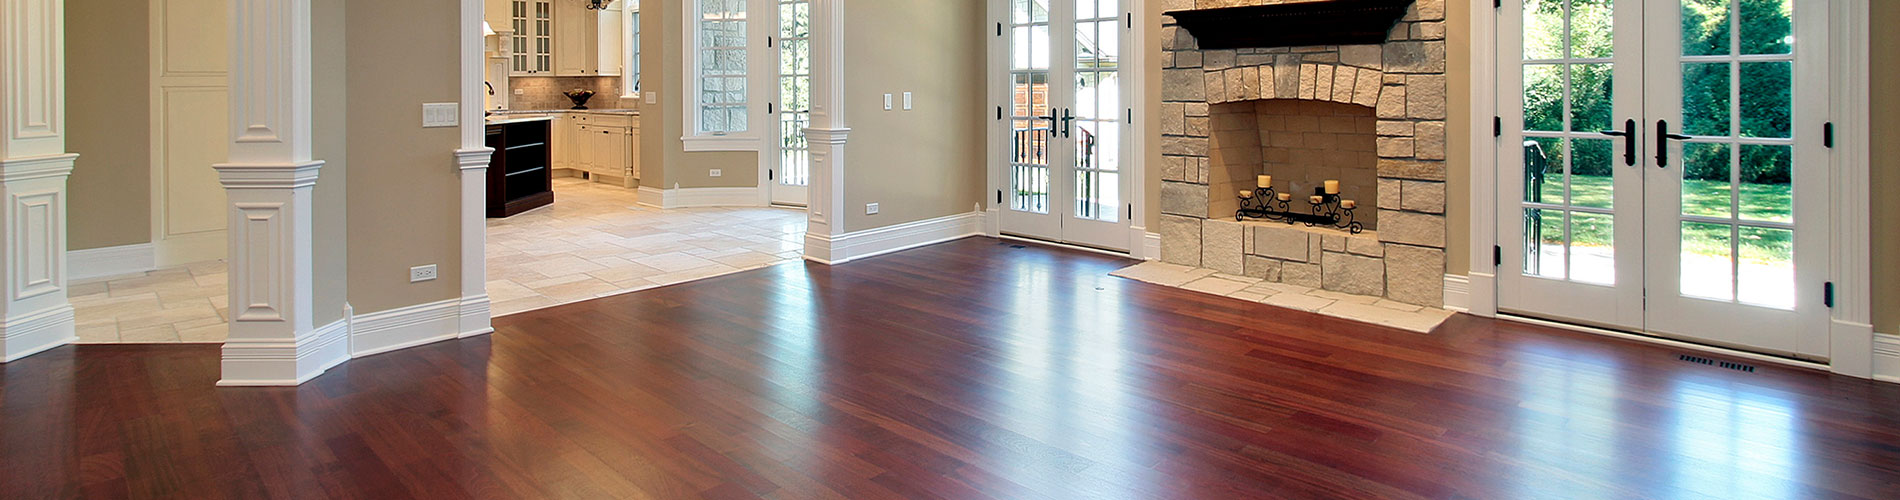 Wood Flooring in Huntington NY, Northport, Bay Shore NY